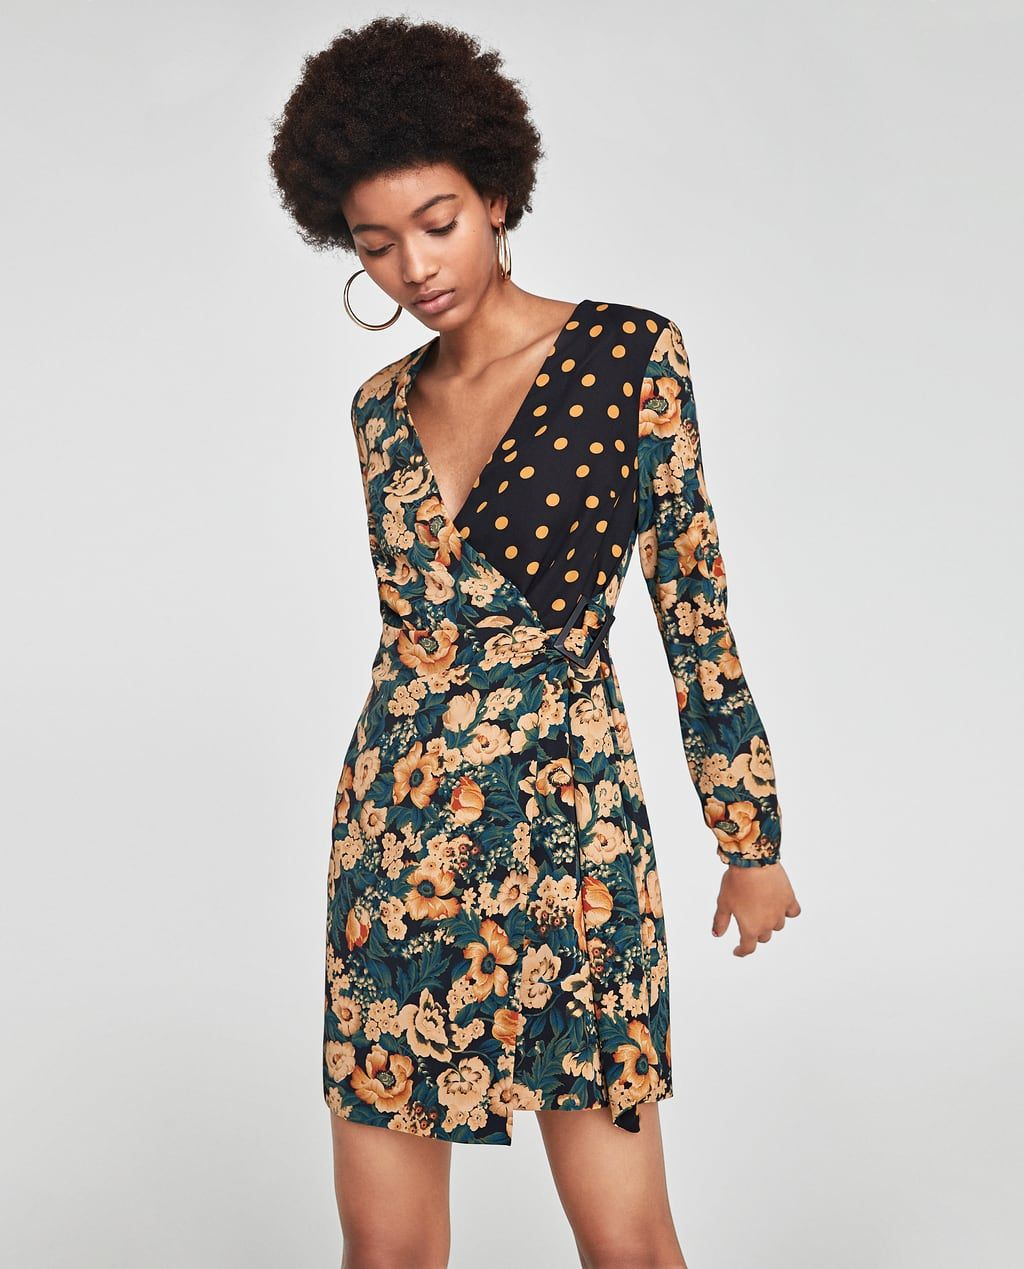 f219ab7602b Image 2 of FLORAL AND POLKA DOT PRINT DRESS from Zara